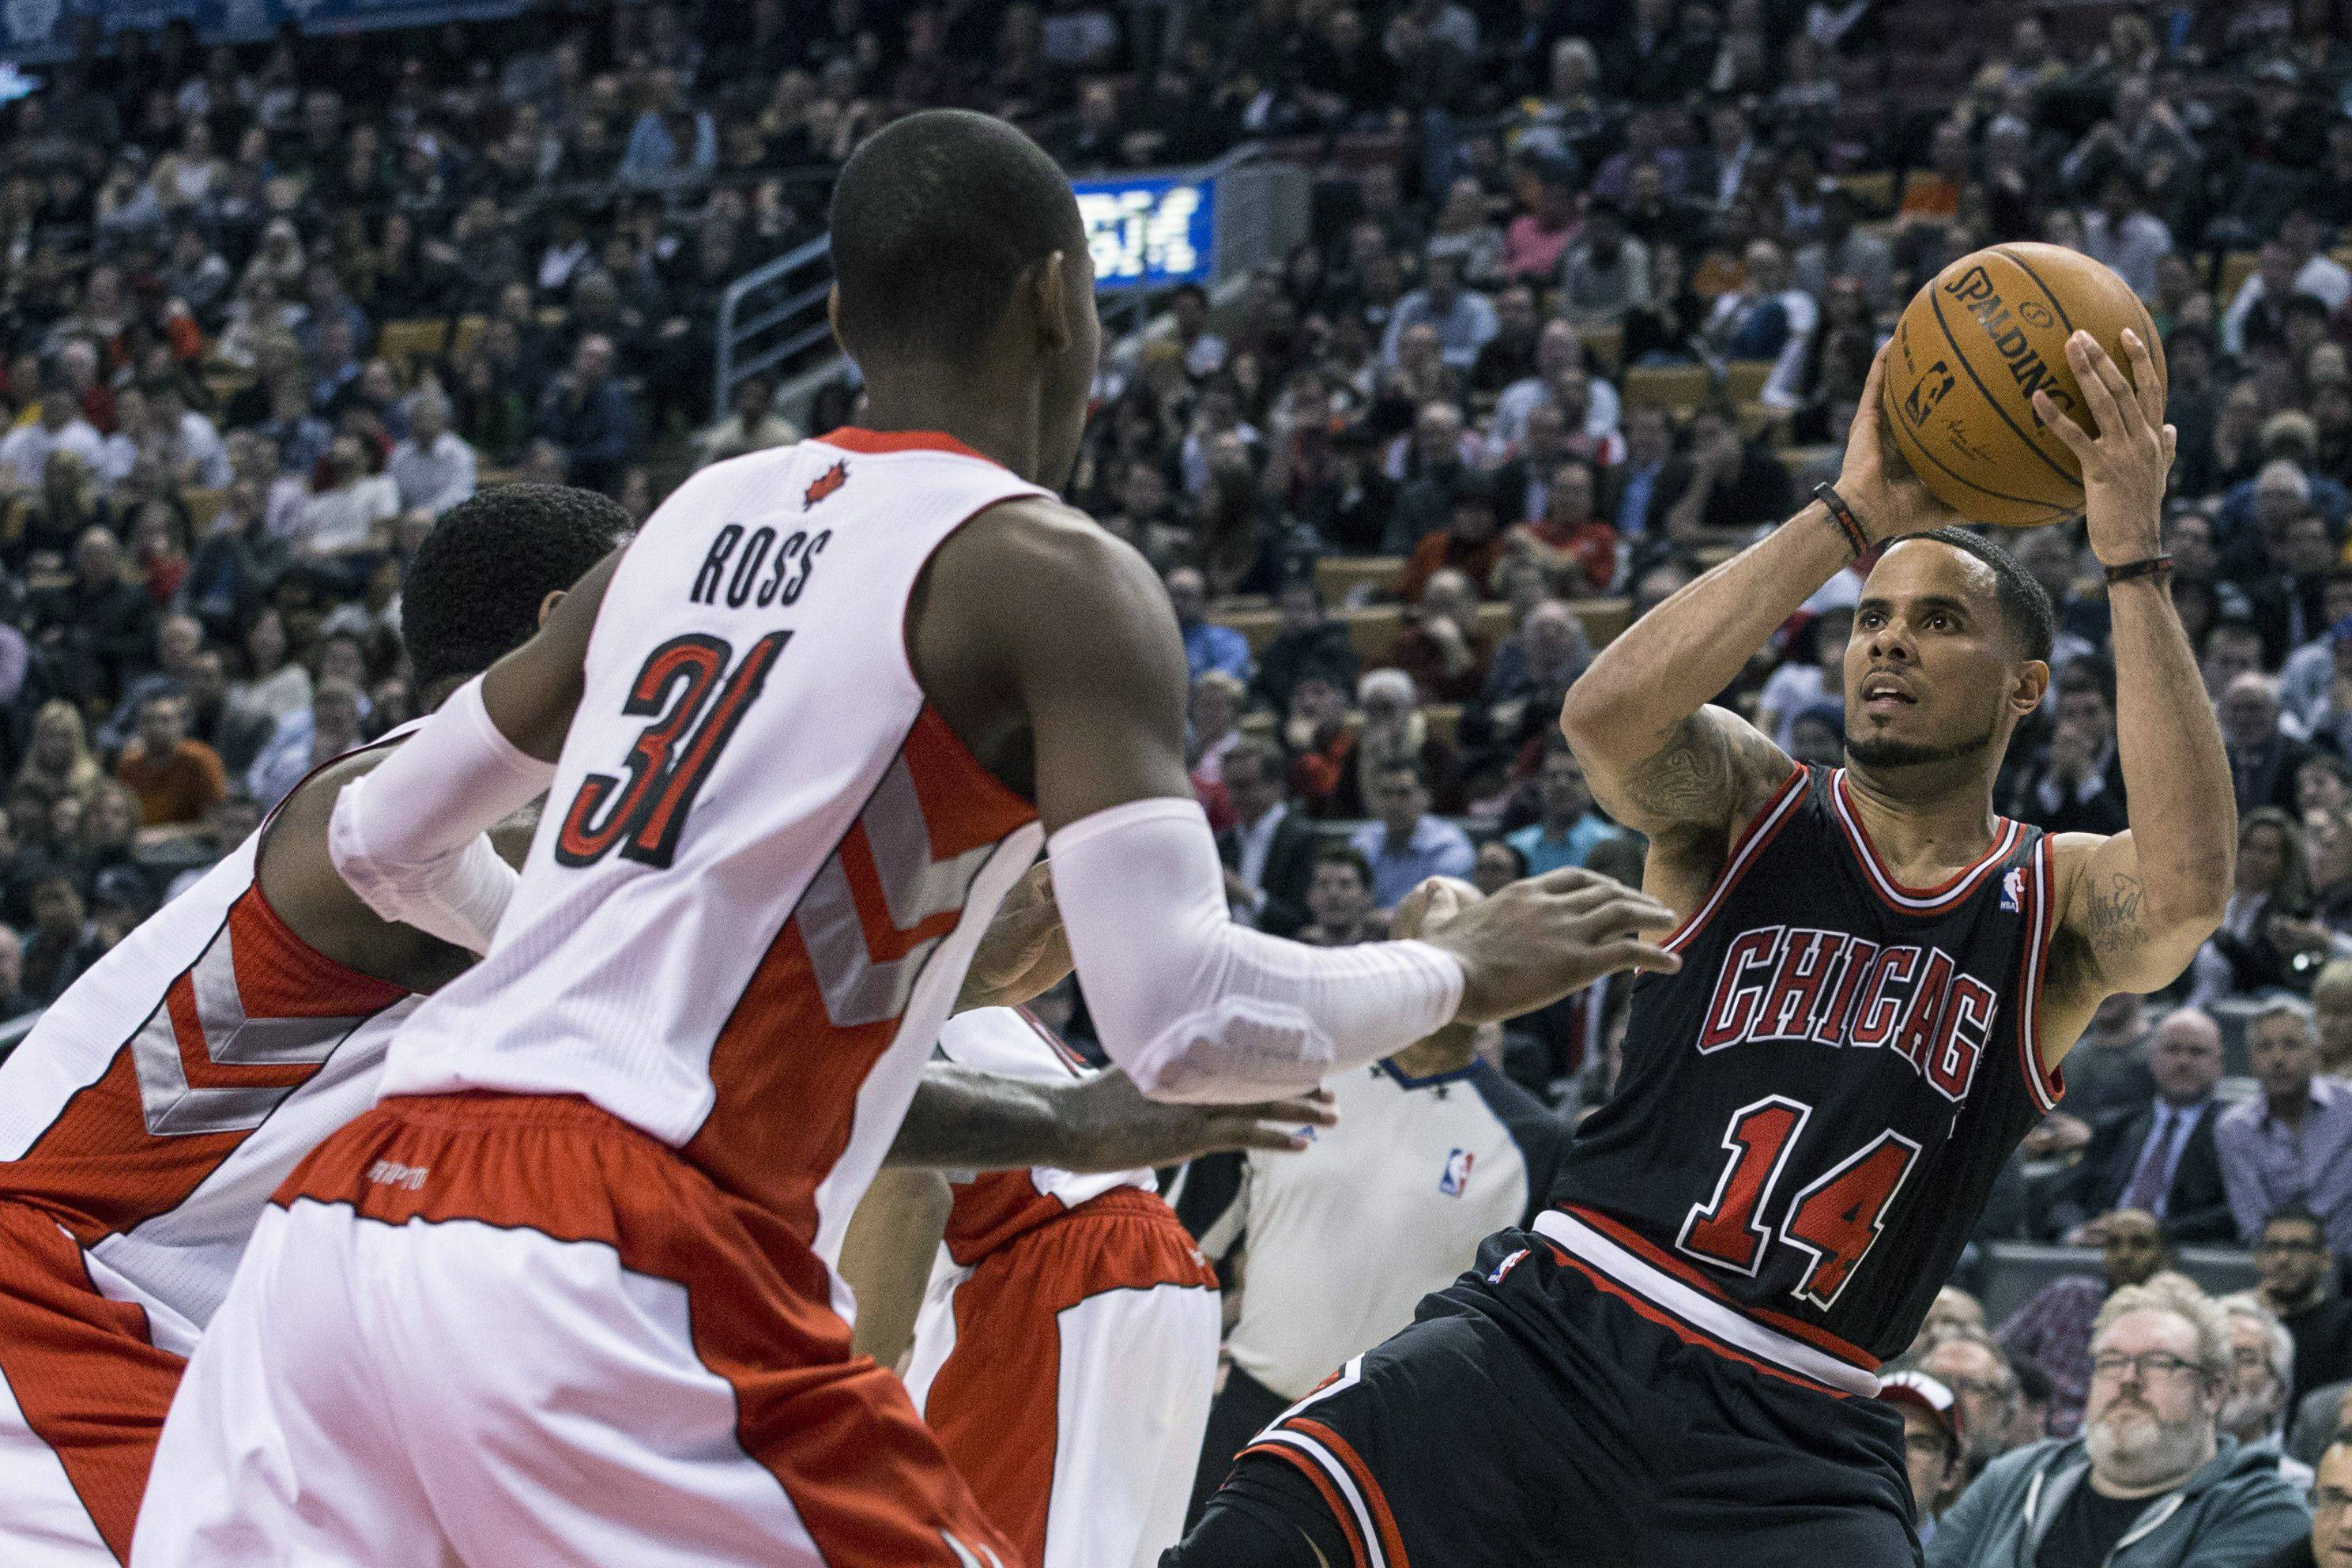 Chicago Bulls' D.J. Augustin (14) scores against Toronto Raptors during the second half of Wednesday's game Toronto. Augstin had 13 points in the fourth quarter to spark the Bulls.